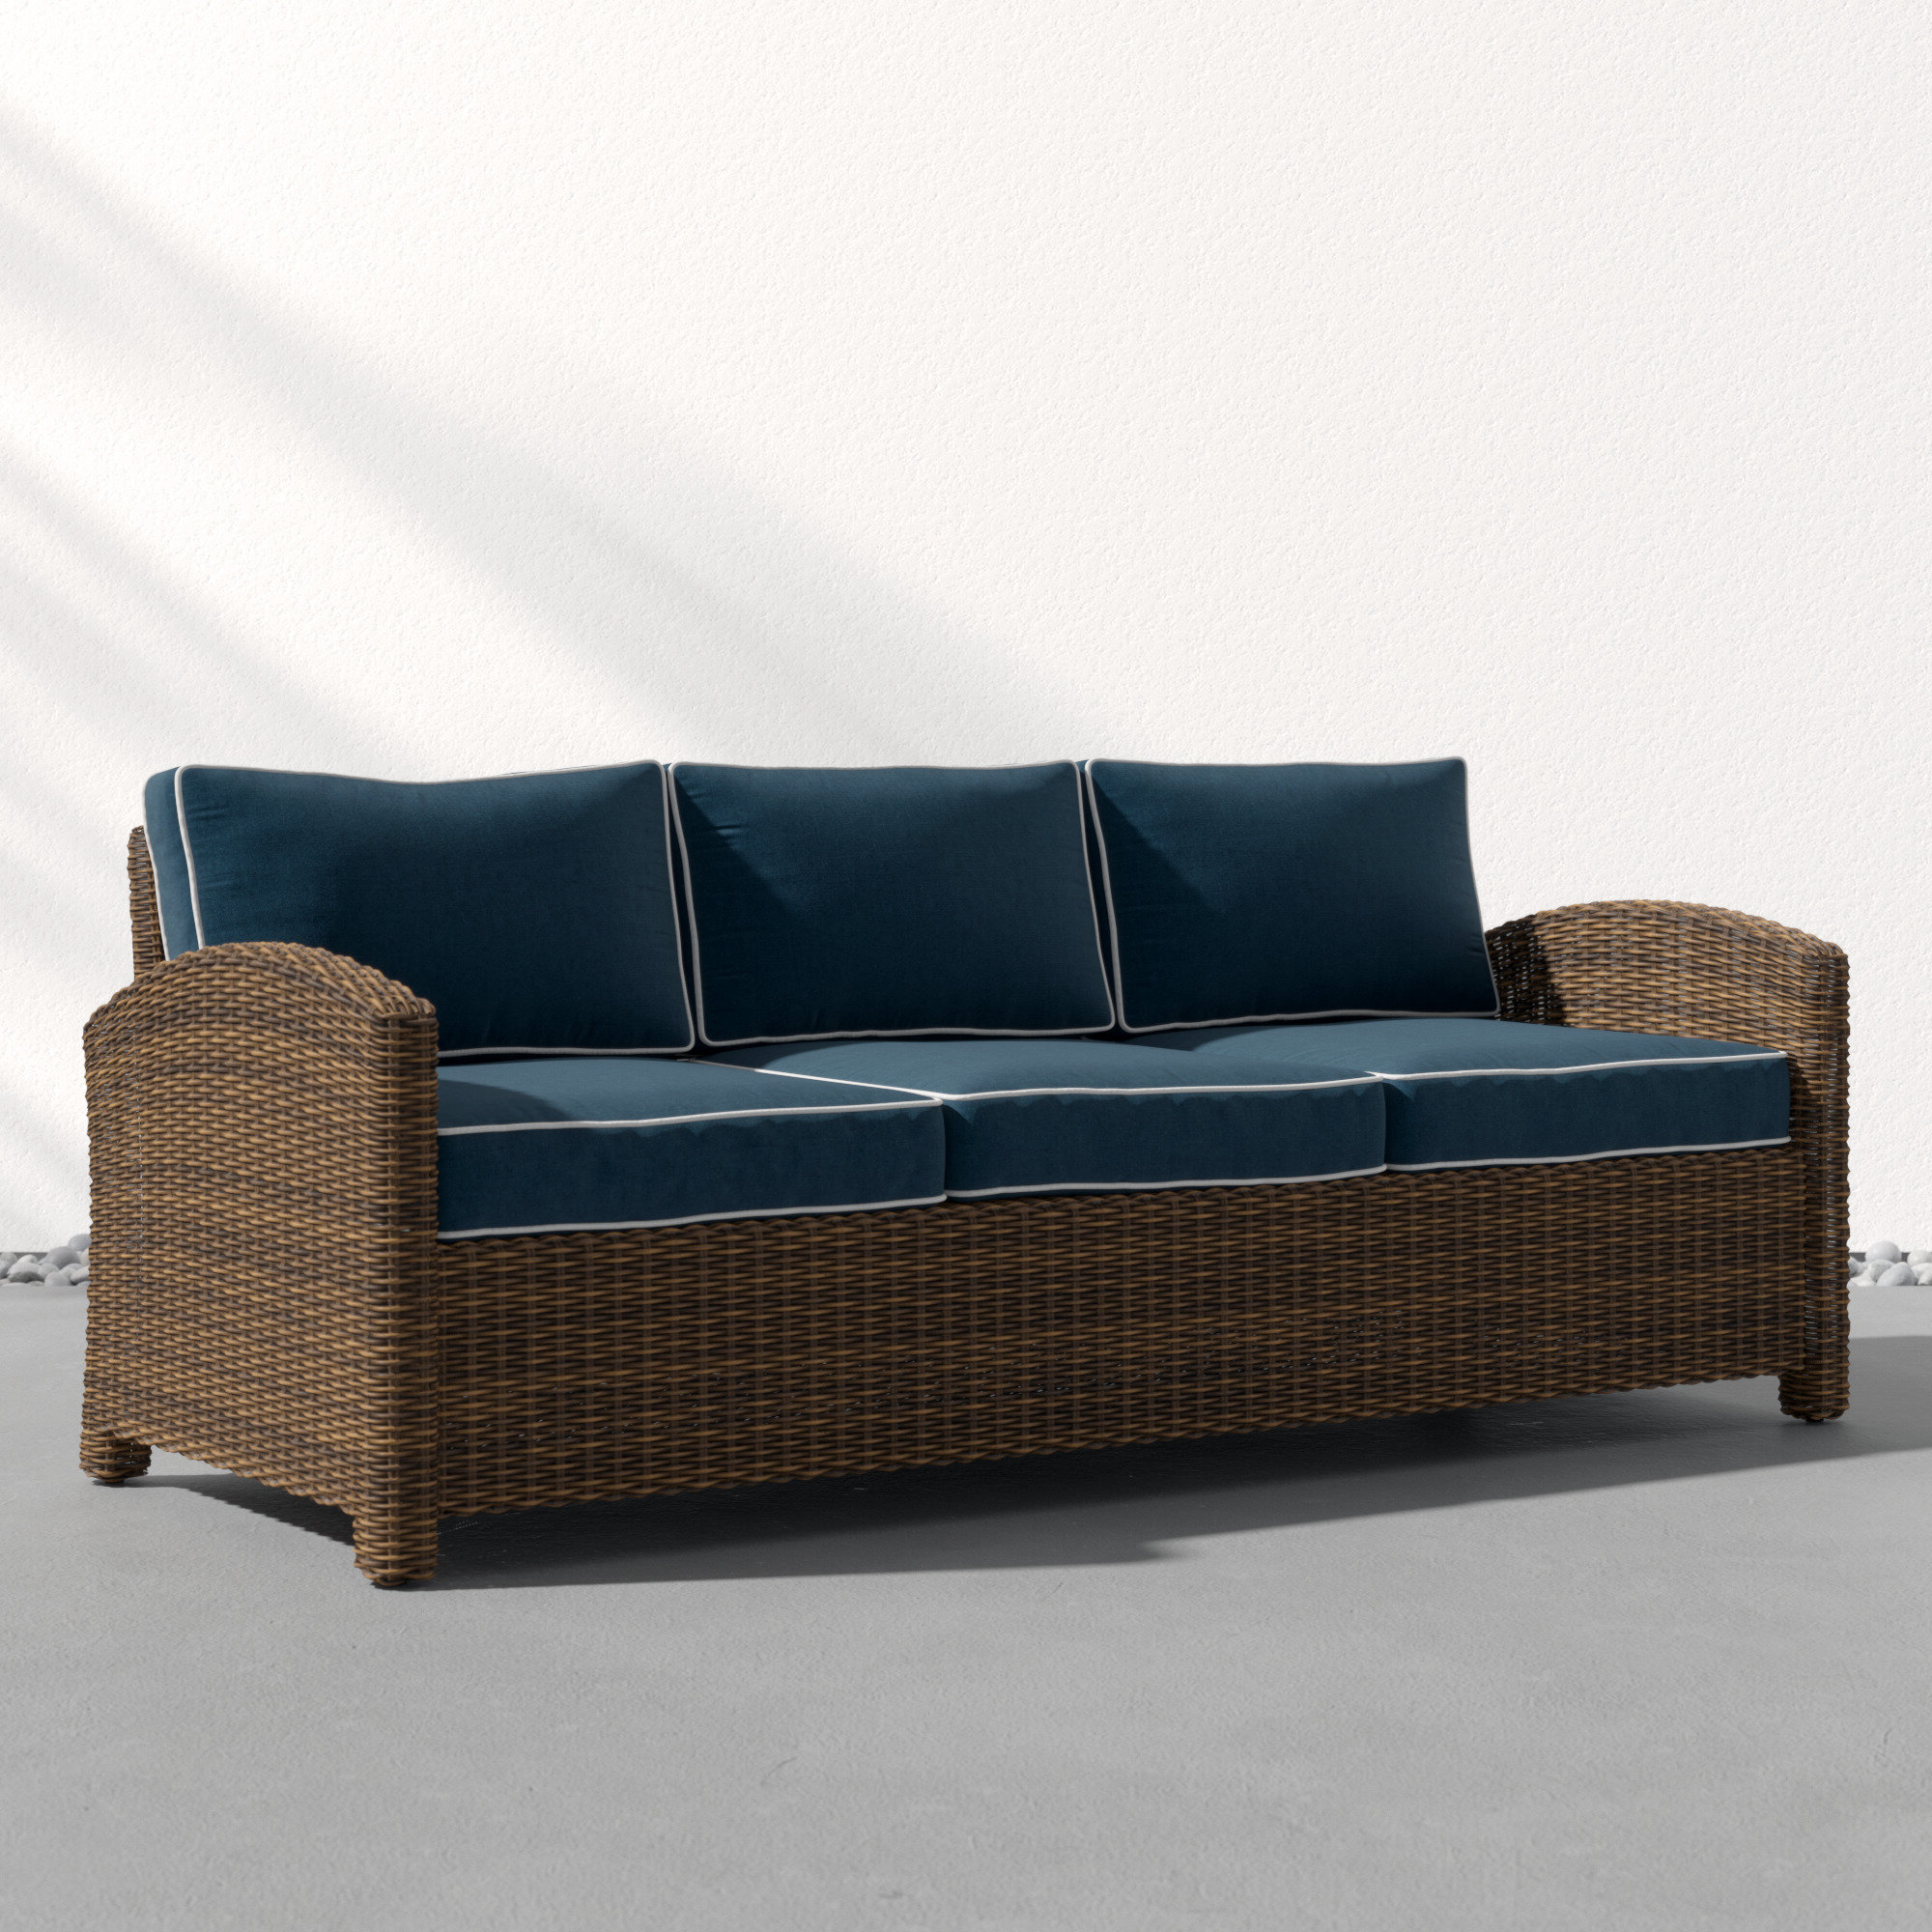 Modern Outdoor Sofas (View 15 of 20)